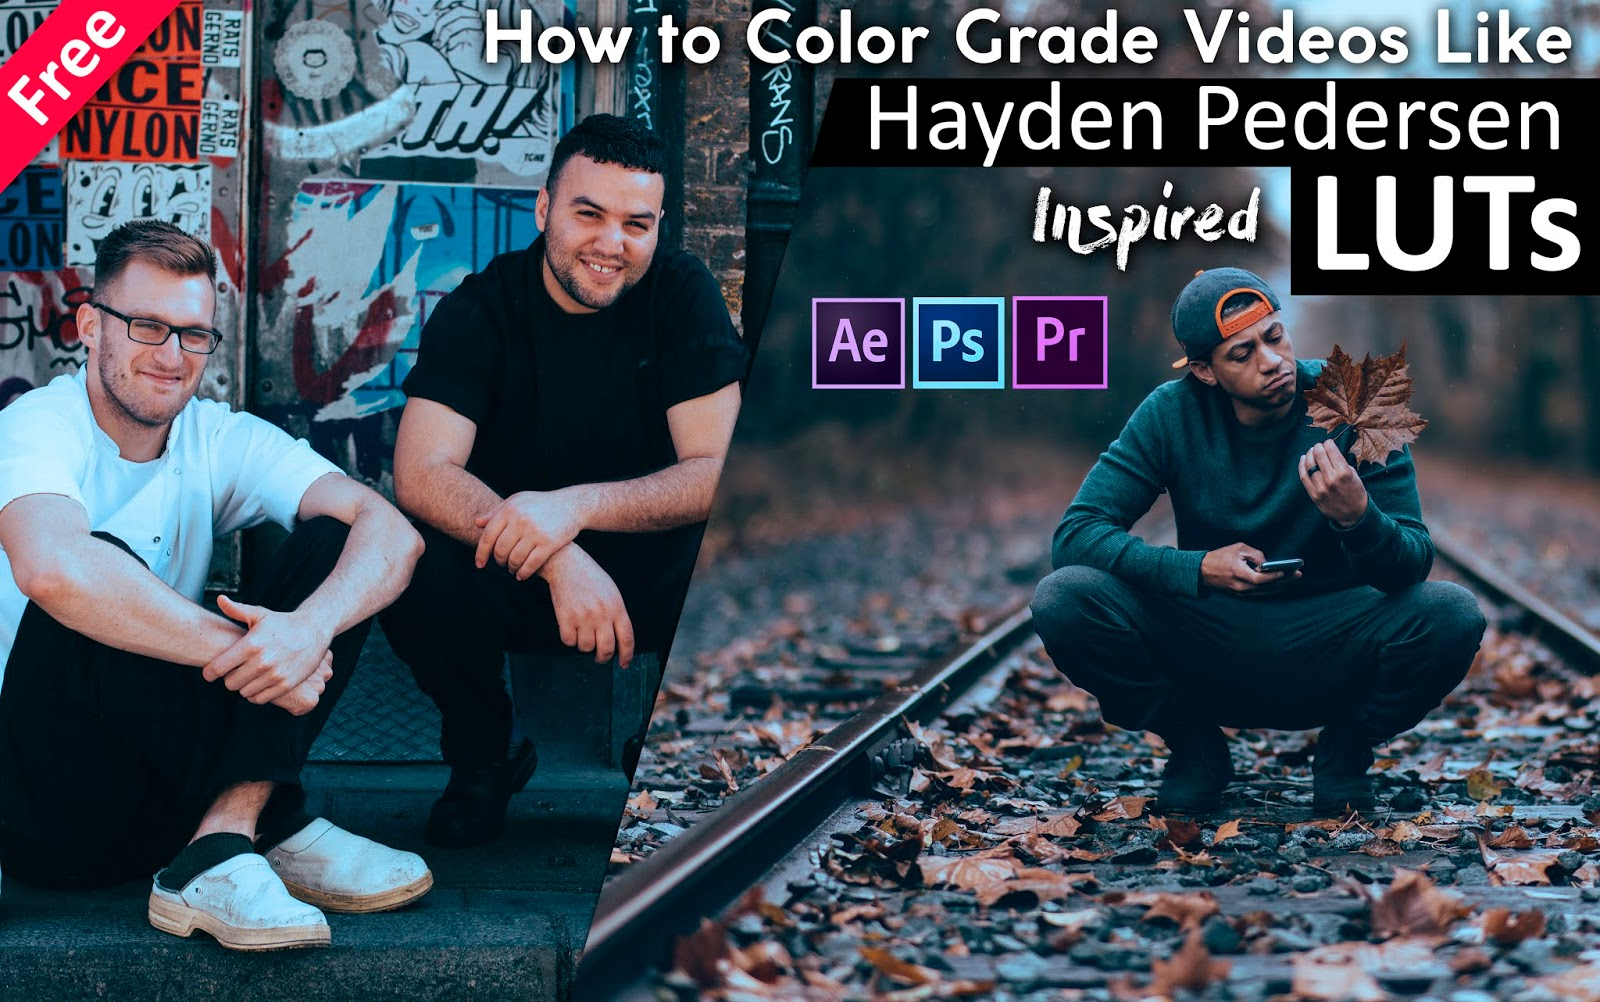 Download Hayden Pedersen Inspired LUTs for Free | How to Color Grade Your Videos in Adobe After Effects, Premiere Pro, Photoshop